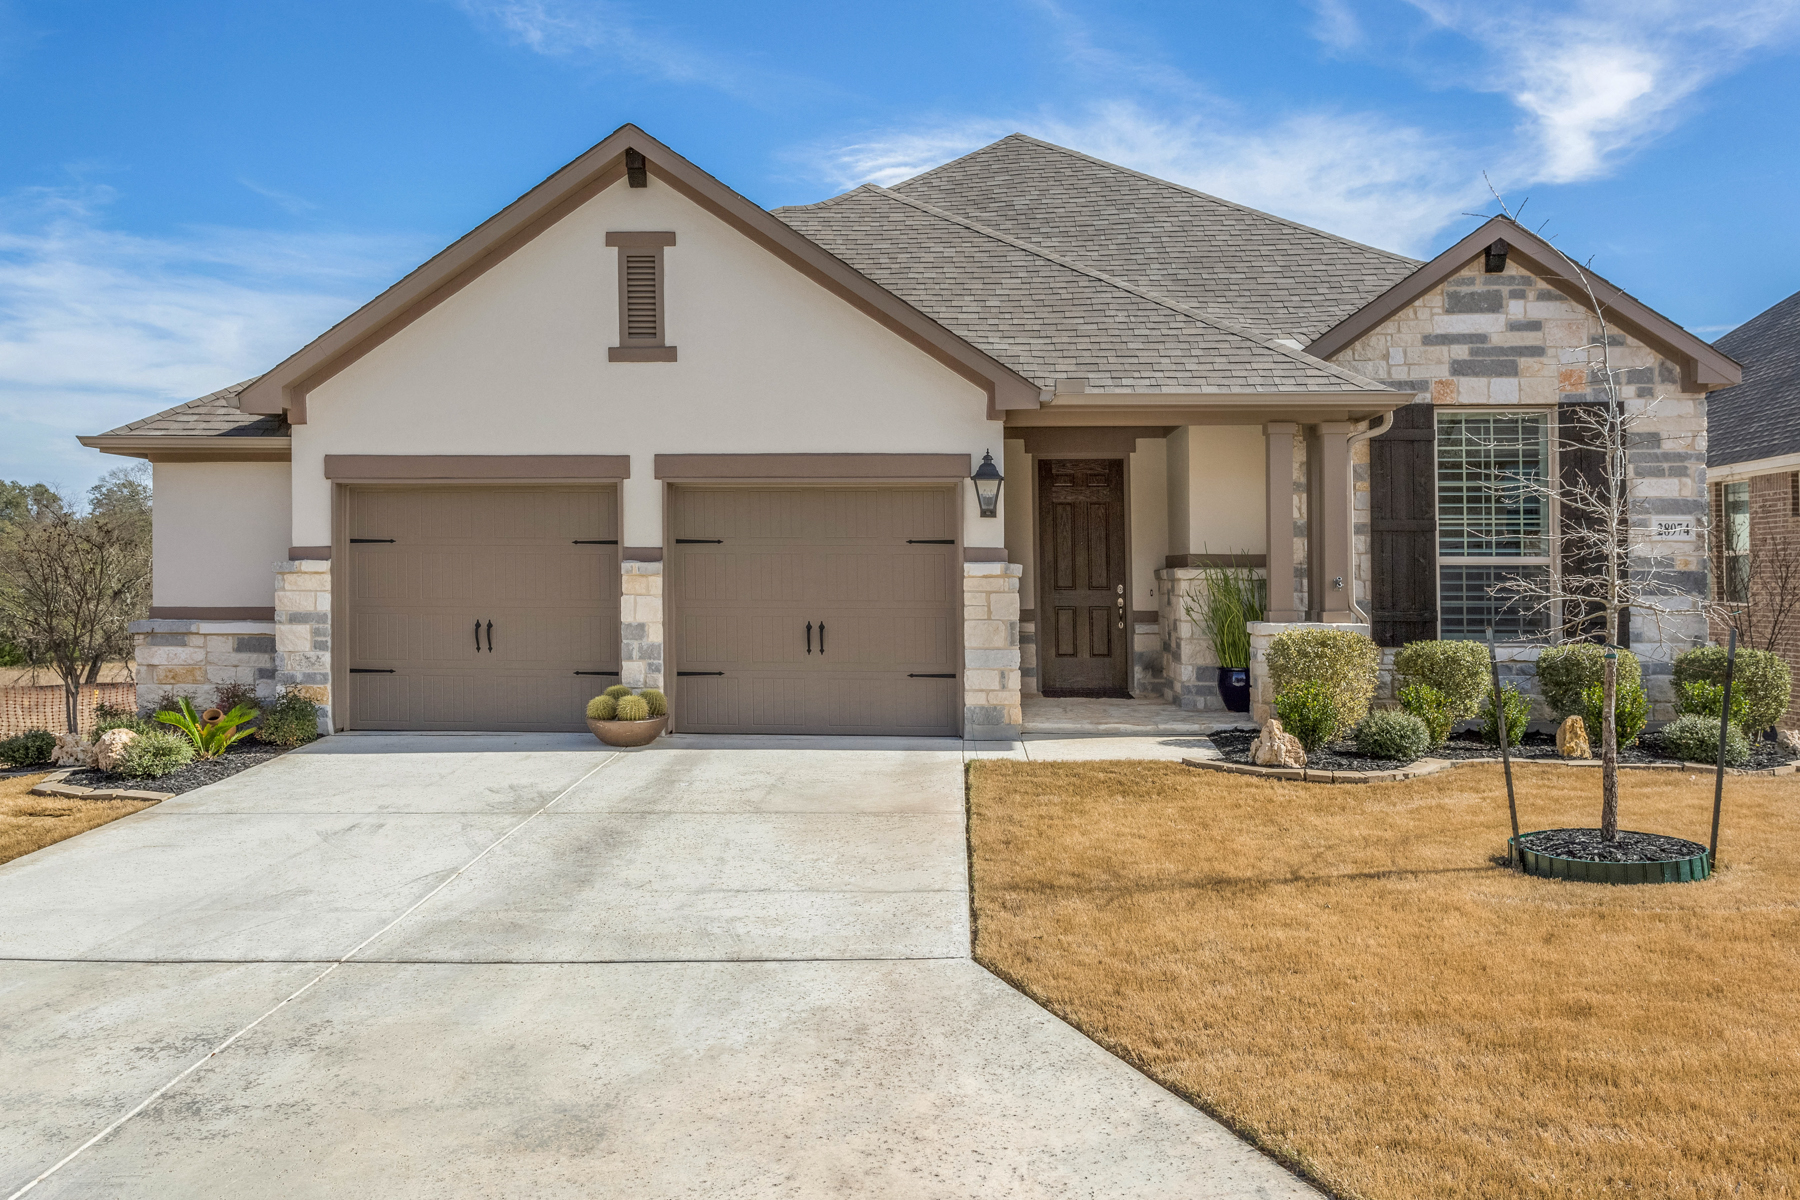 Single Family Home for Sale at Great Home in Front Gate 28974 Fairs Gate Fair Oaks Ranch, Texas 78015 United States